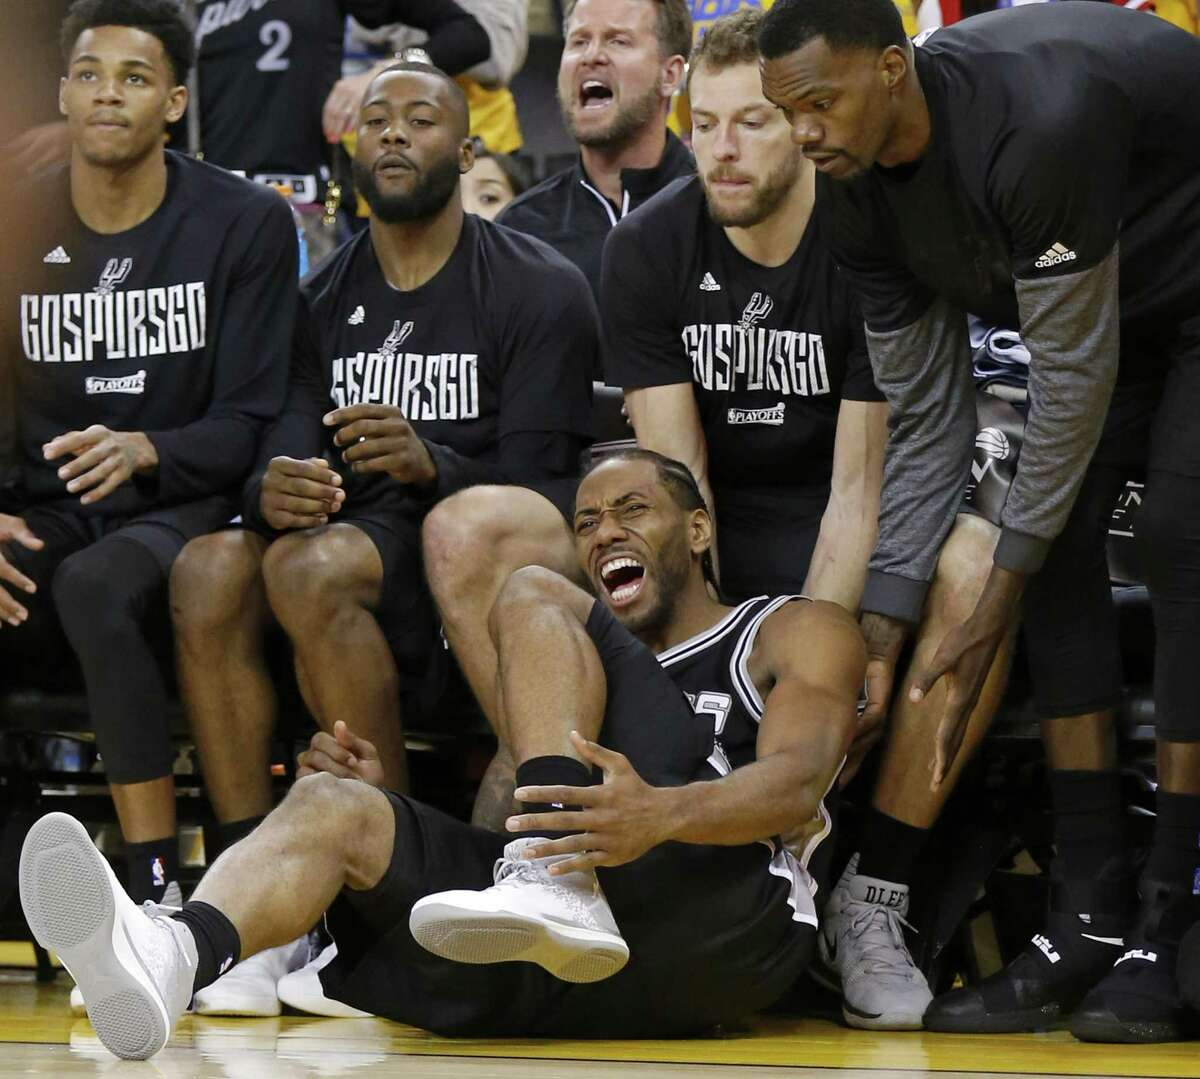 San Antonio Spurs' Kawhi Leonard reacts after being injured on a play during second half action of Game 1 in the Western Conference Finals against the Golden State Warriors Sunday May 14, 2017 at Oracle Arena in Oakland, CA. The Warriors won 113-111.